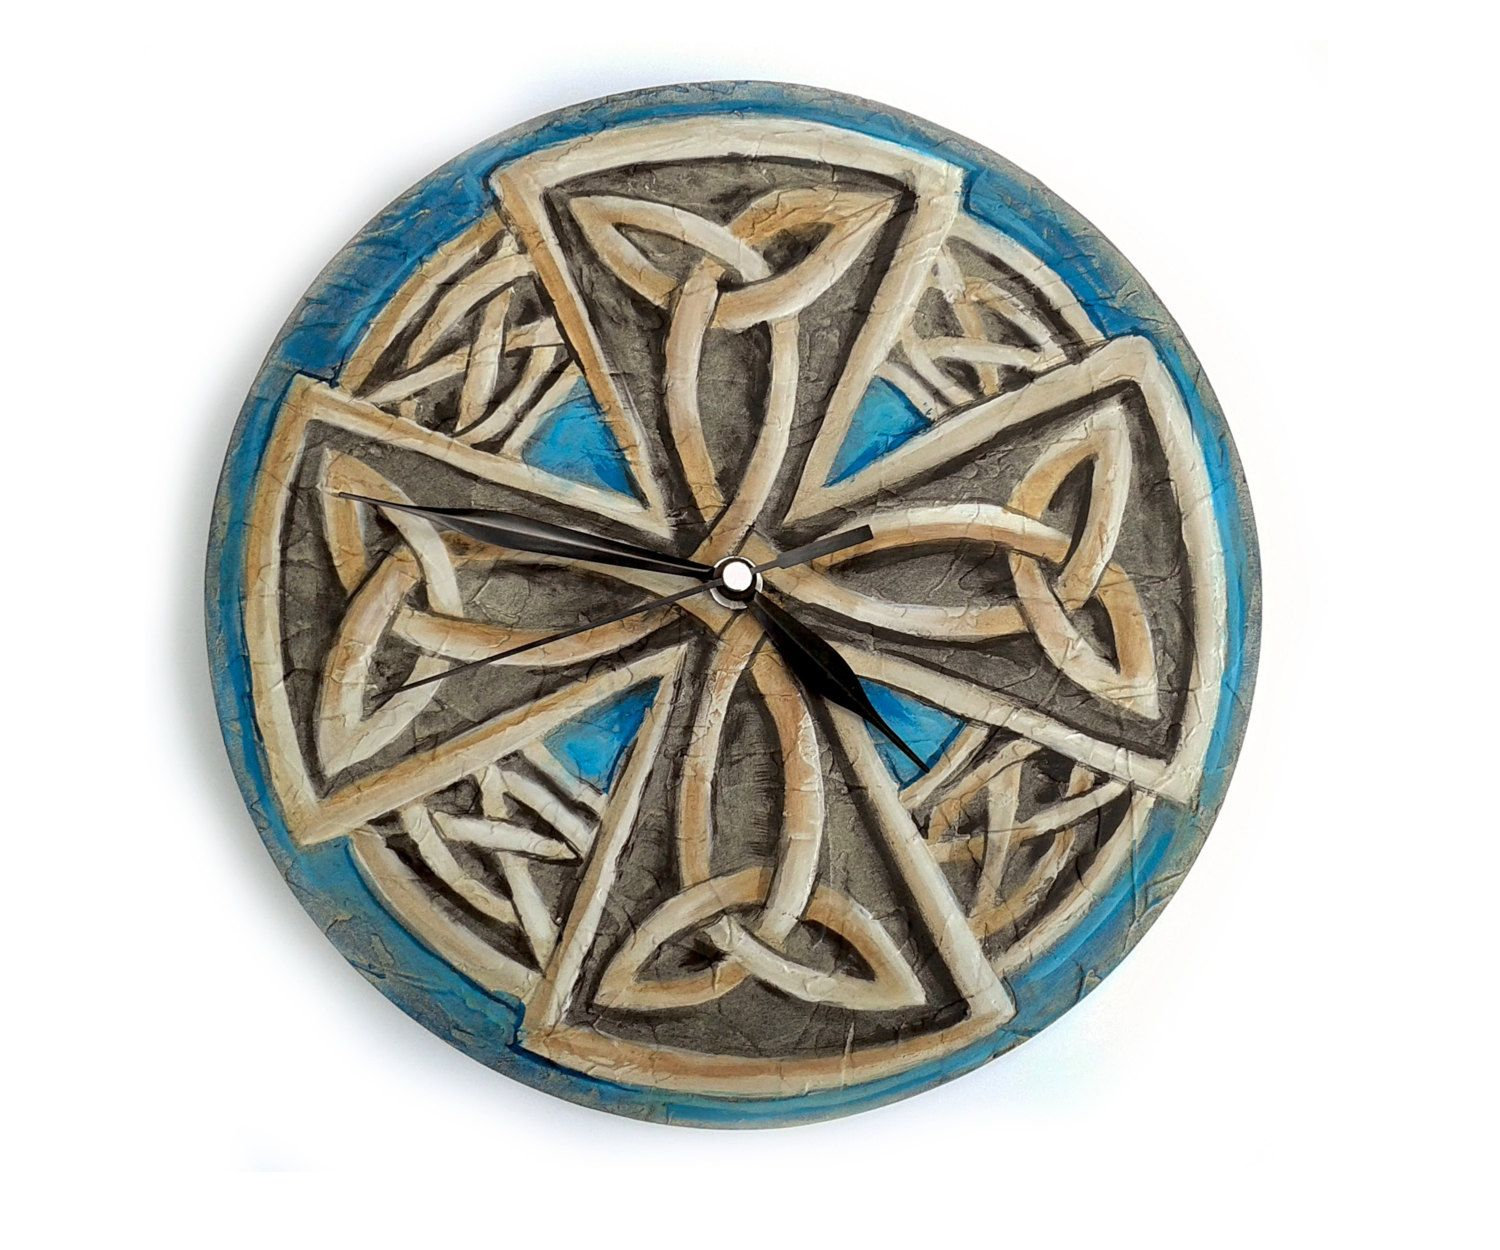 Celtic eternal knot wall clock viking cross painting by pilipart